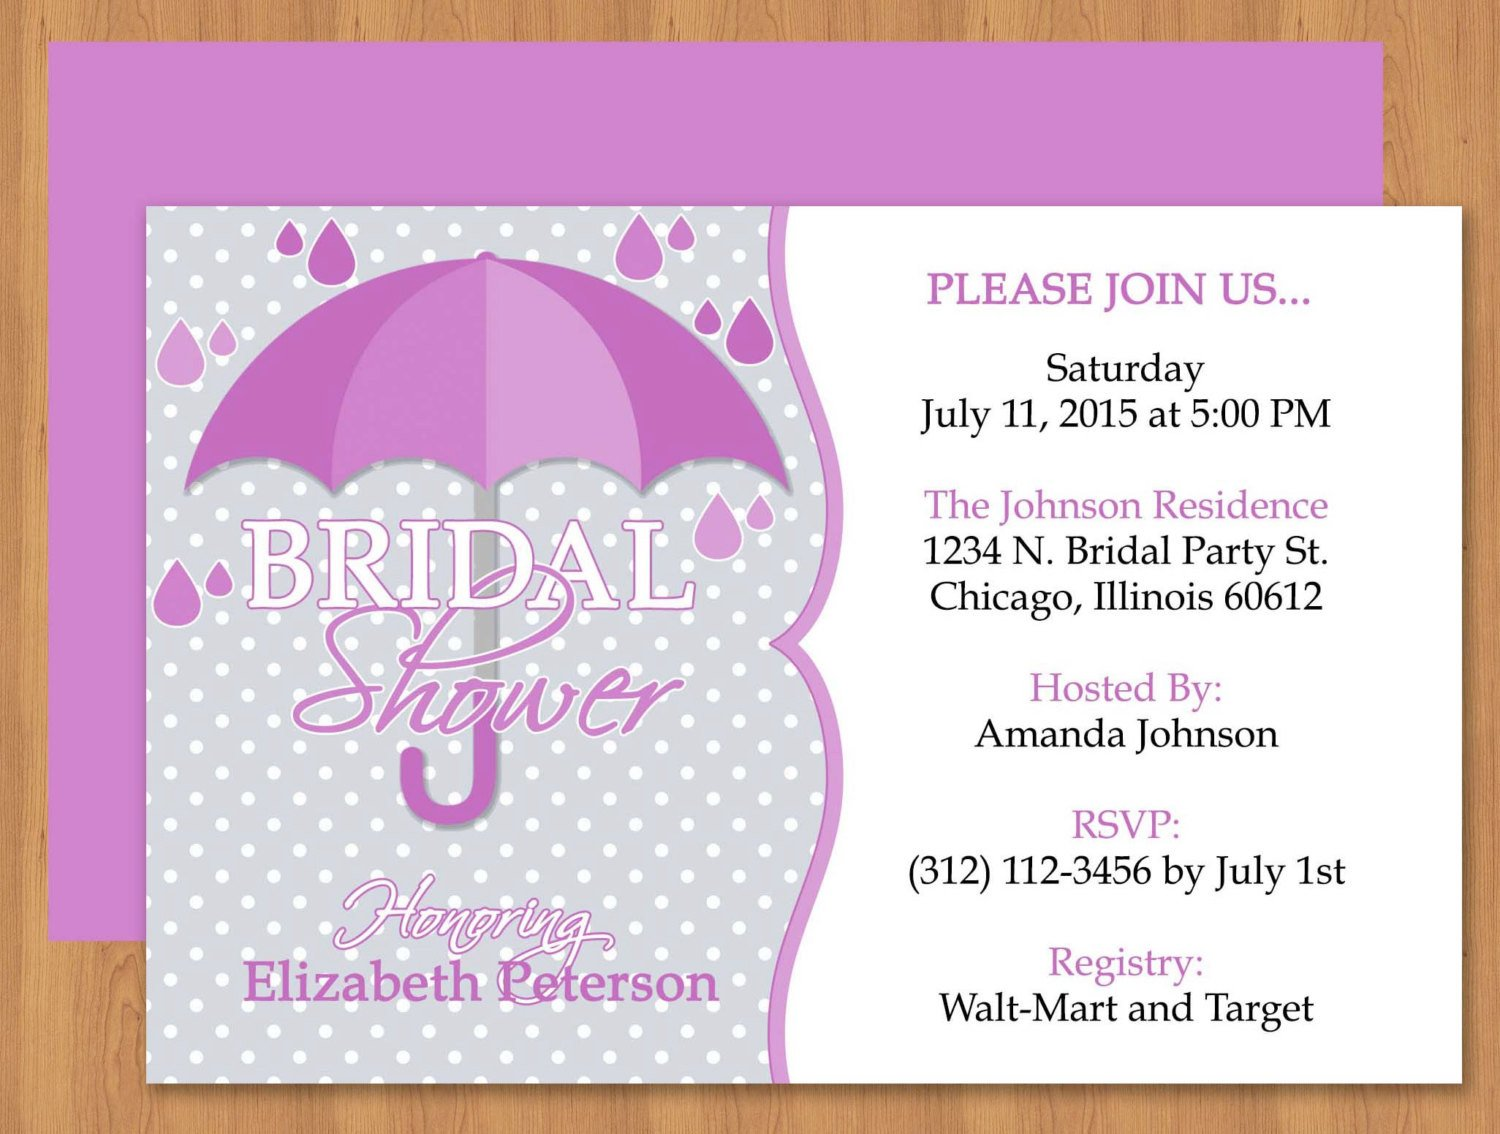 Wedding Shower Invitation Templates Purple Umbrella Bridal Shower Invitation Editable Template